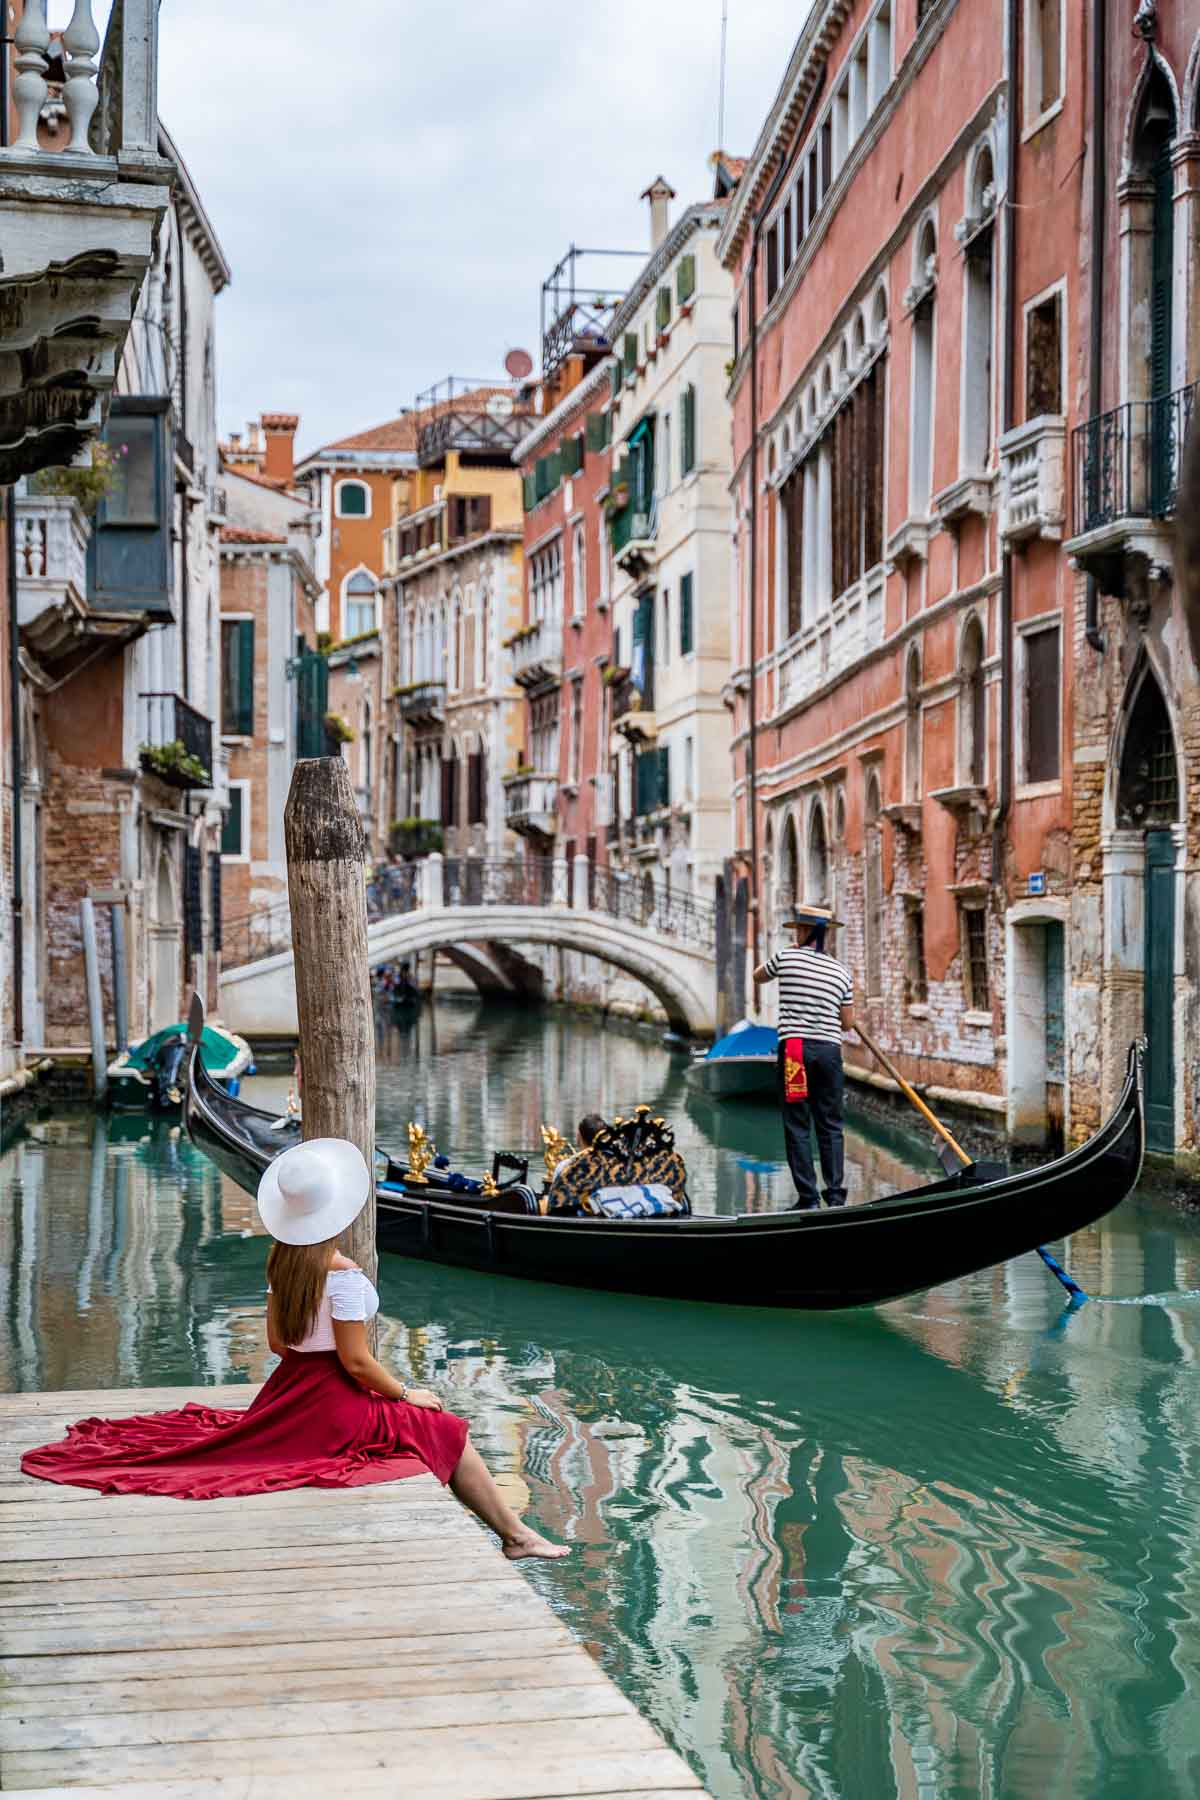 Girl in a red skirt sitting on a little pier along the canals, which is one of the best Venice Instagram spots